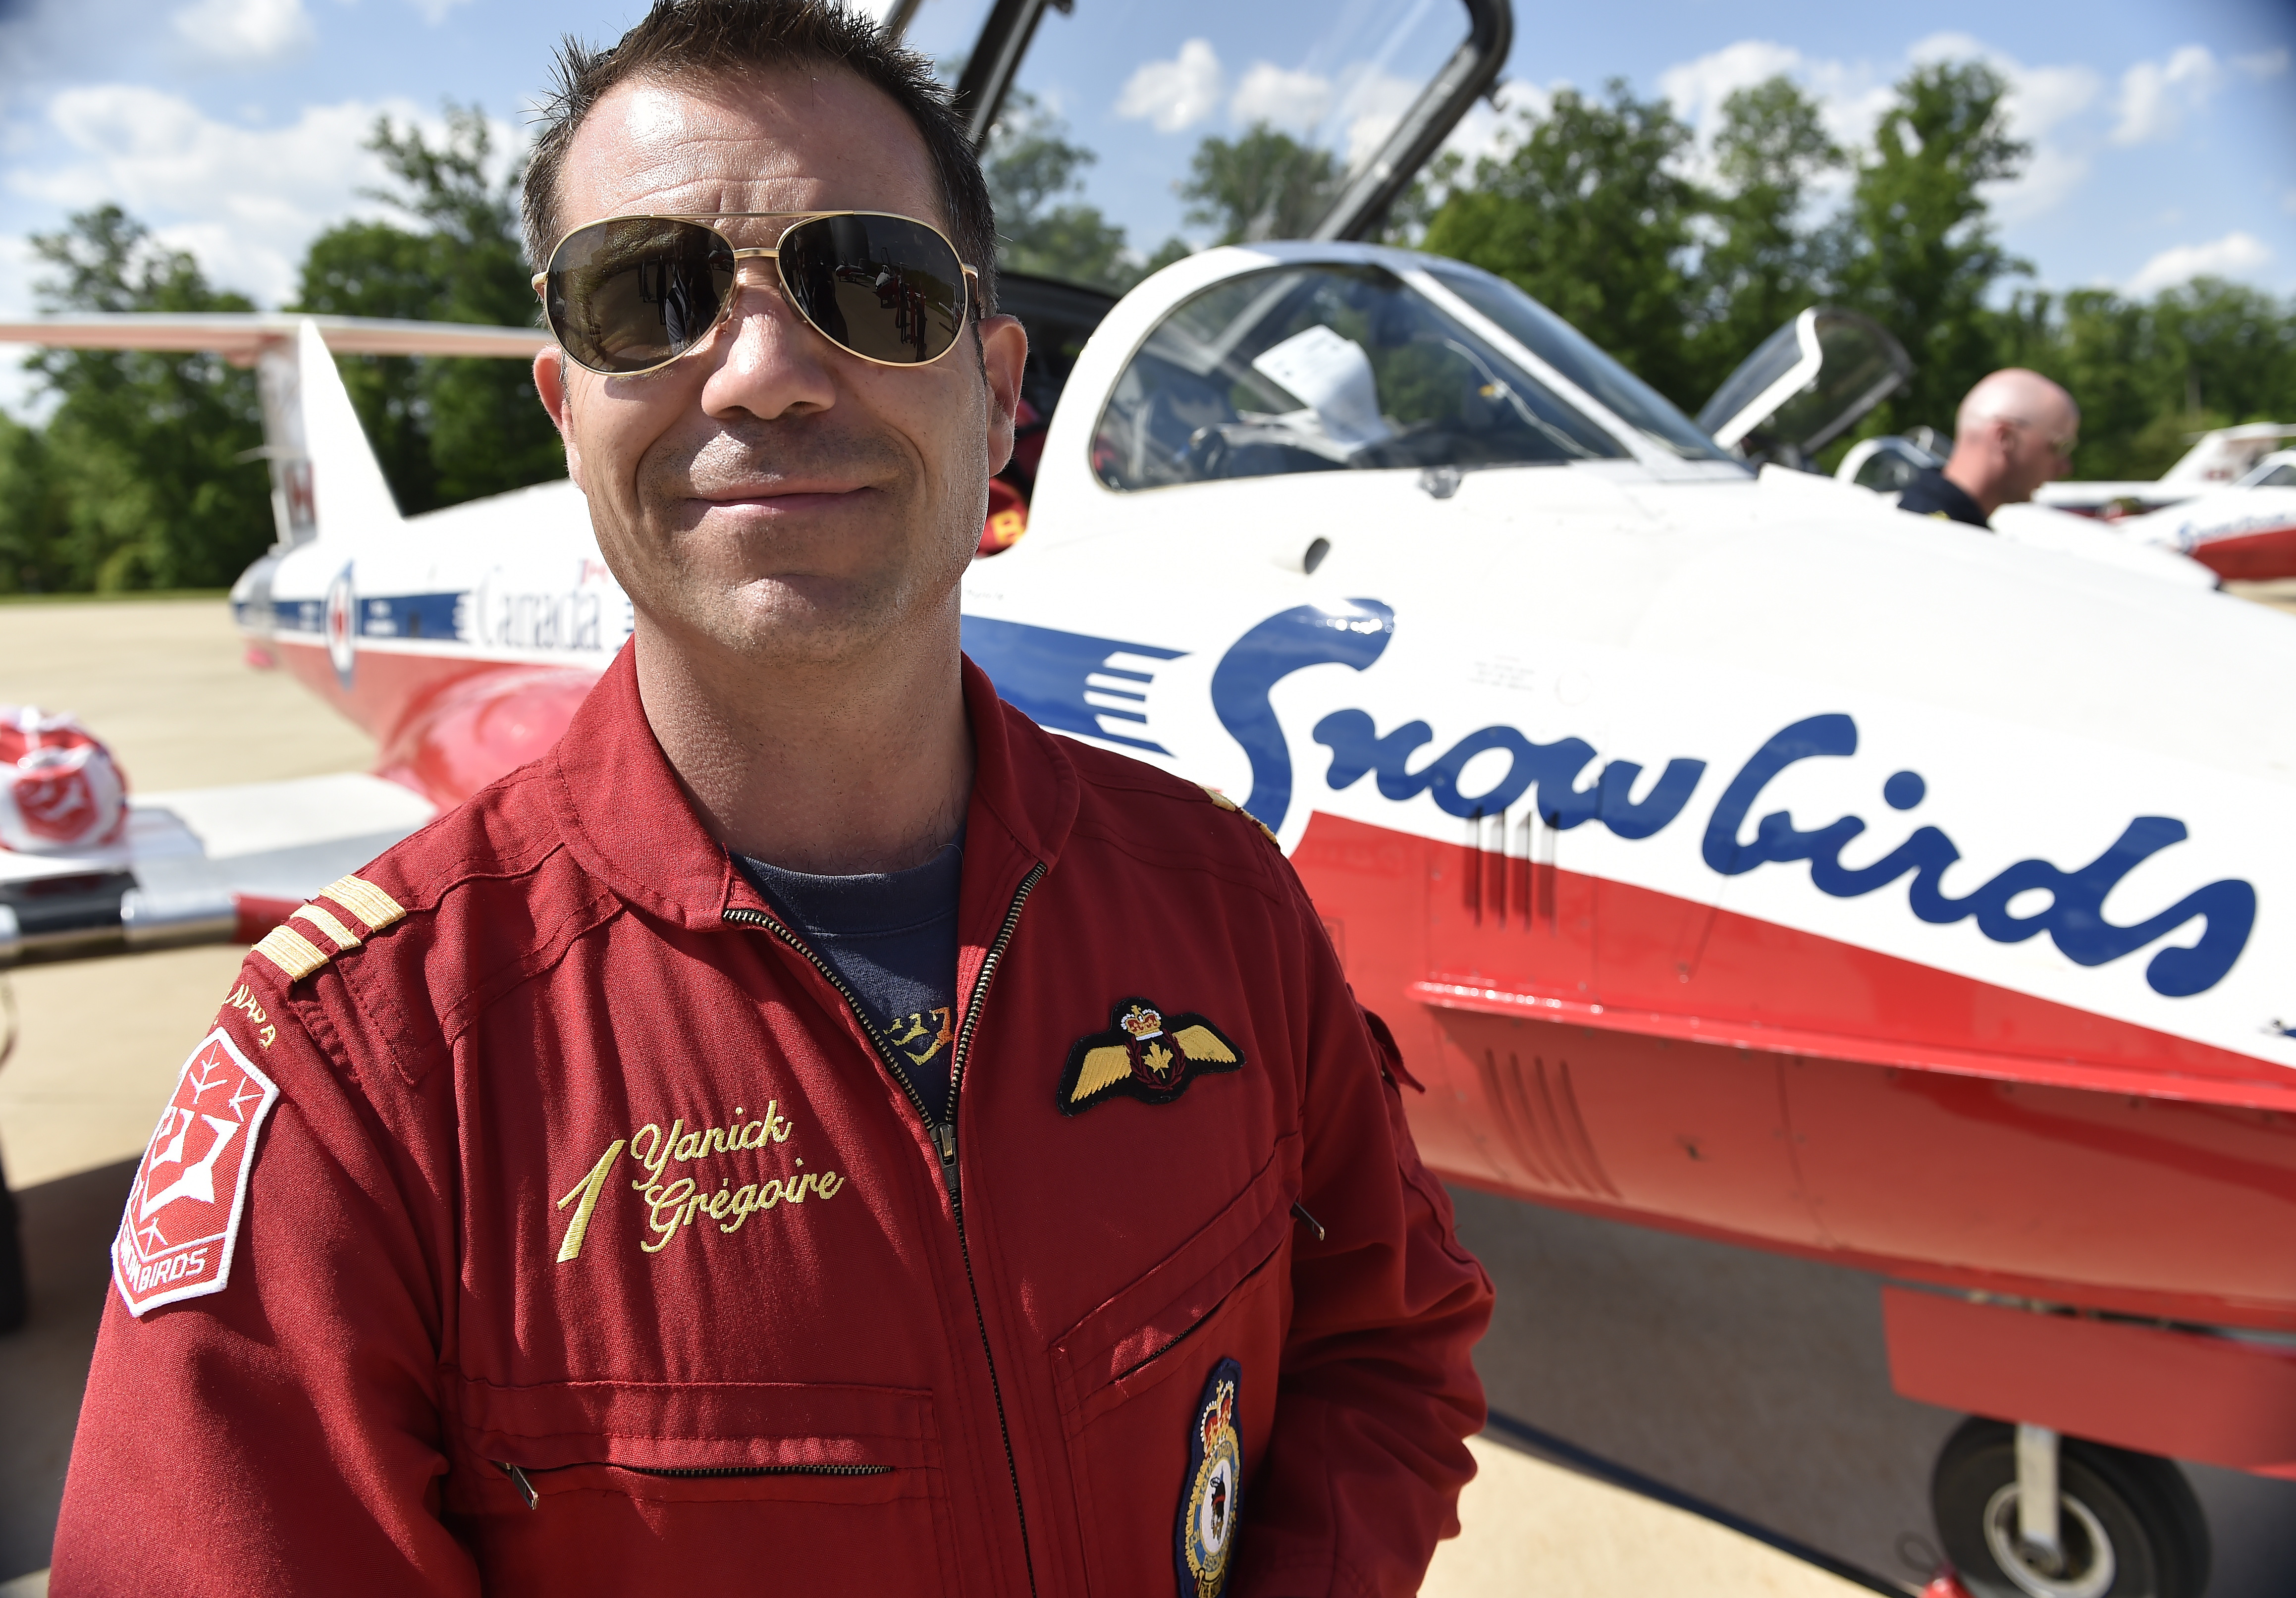 Snowbirds Major Yanick 'Crank' Gregoire led a nine-ship flyover of Washington, D.C. as a friendship salute to the United States. Photo by David Tulis.